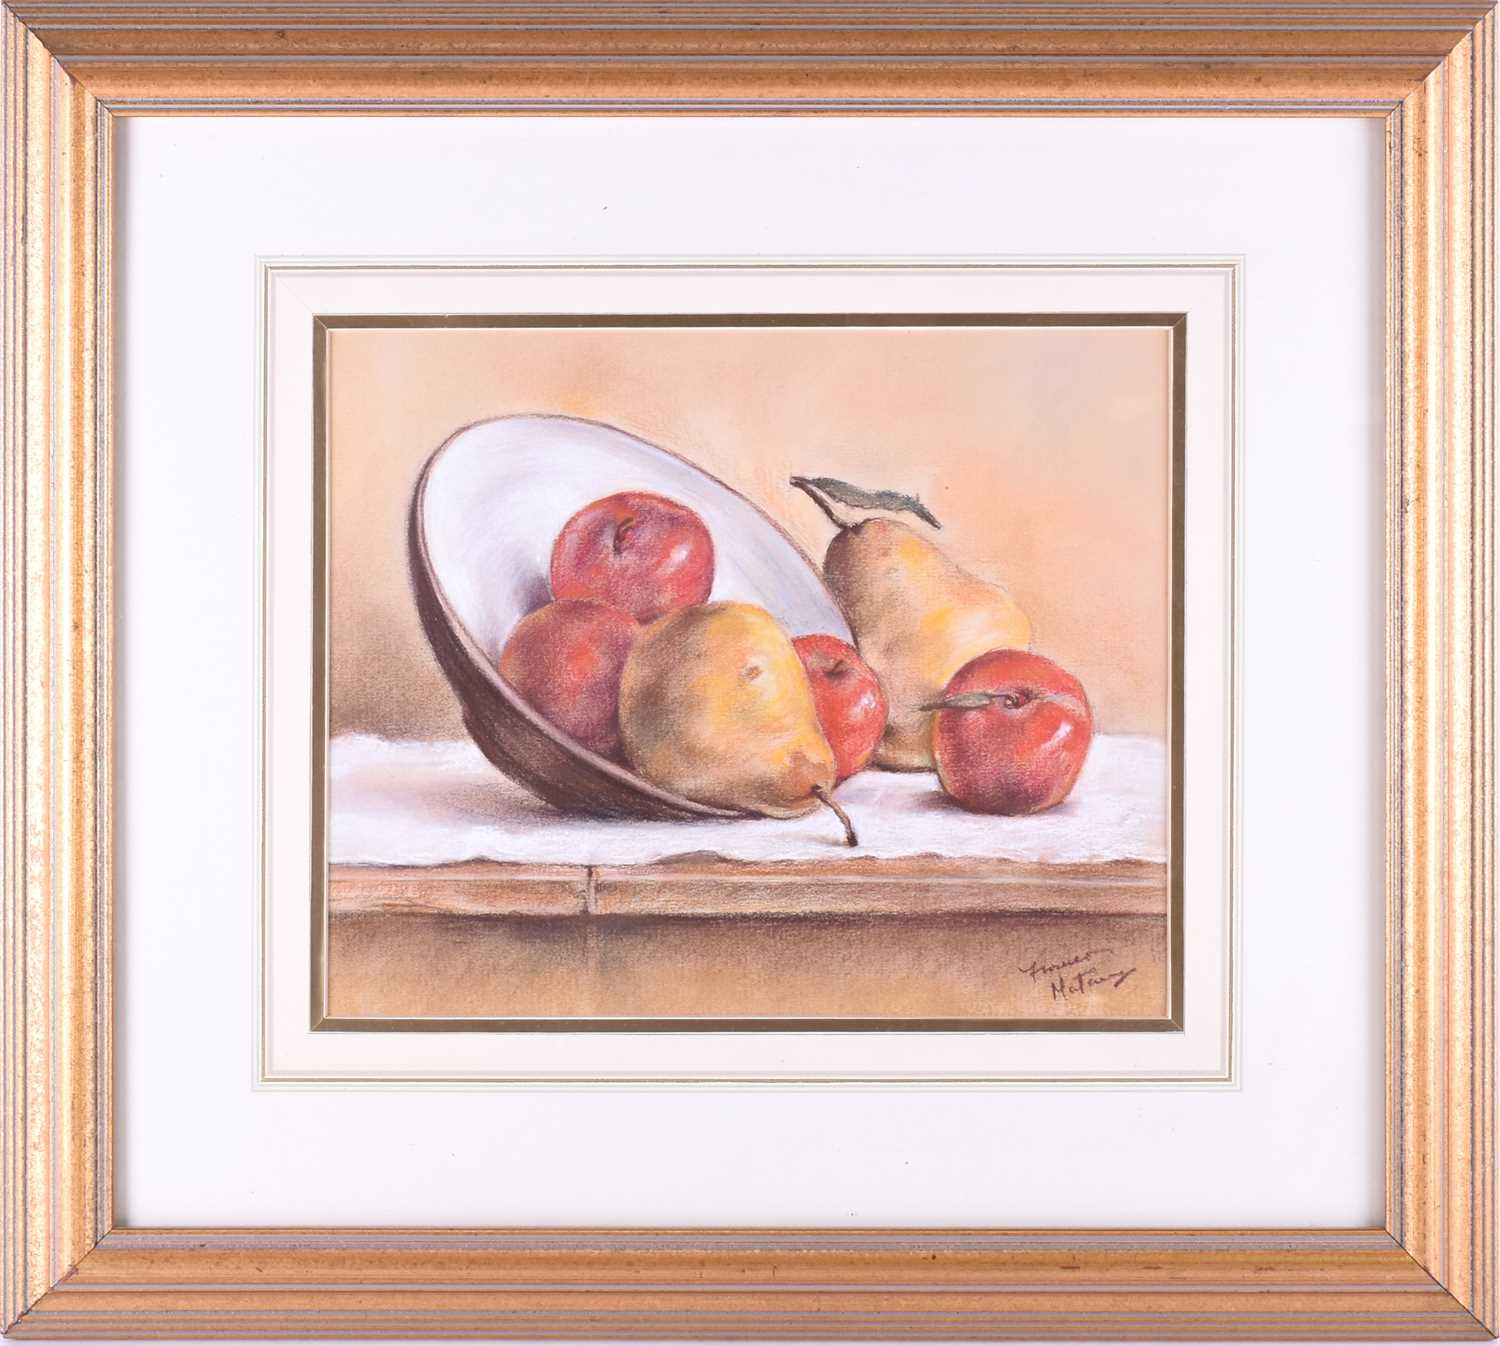 Lot 38 - Franco Matania (1922-2006) Italian/British, a still life 'Apples and Pears', pastel on paper, signed